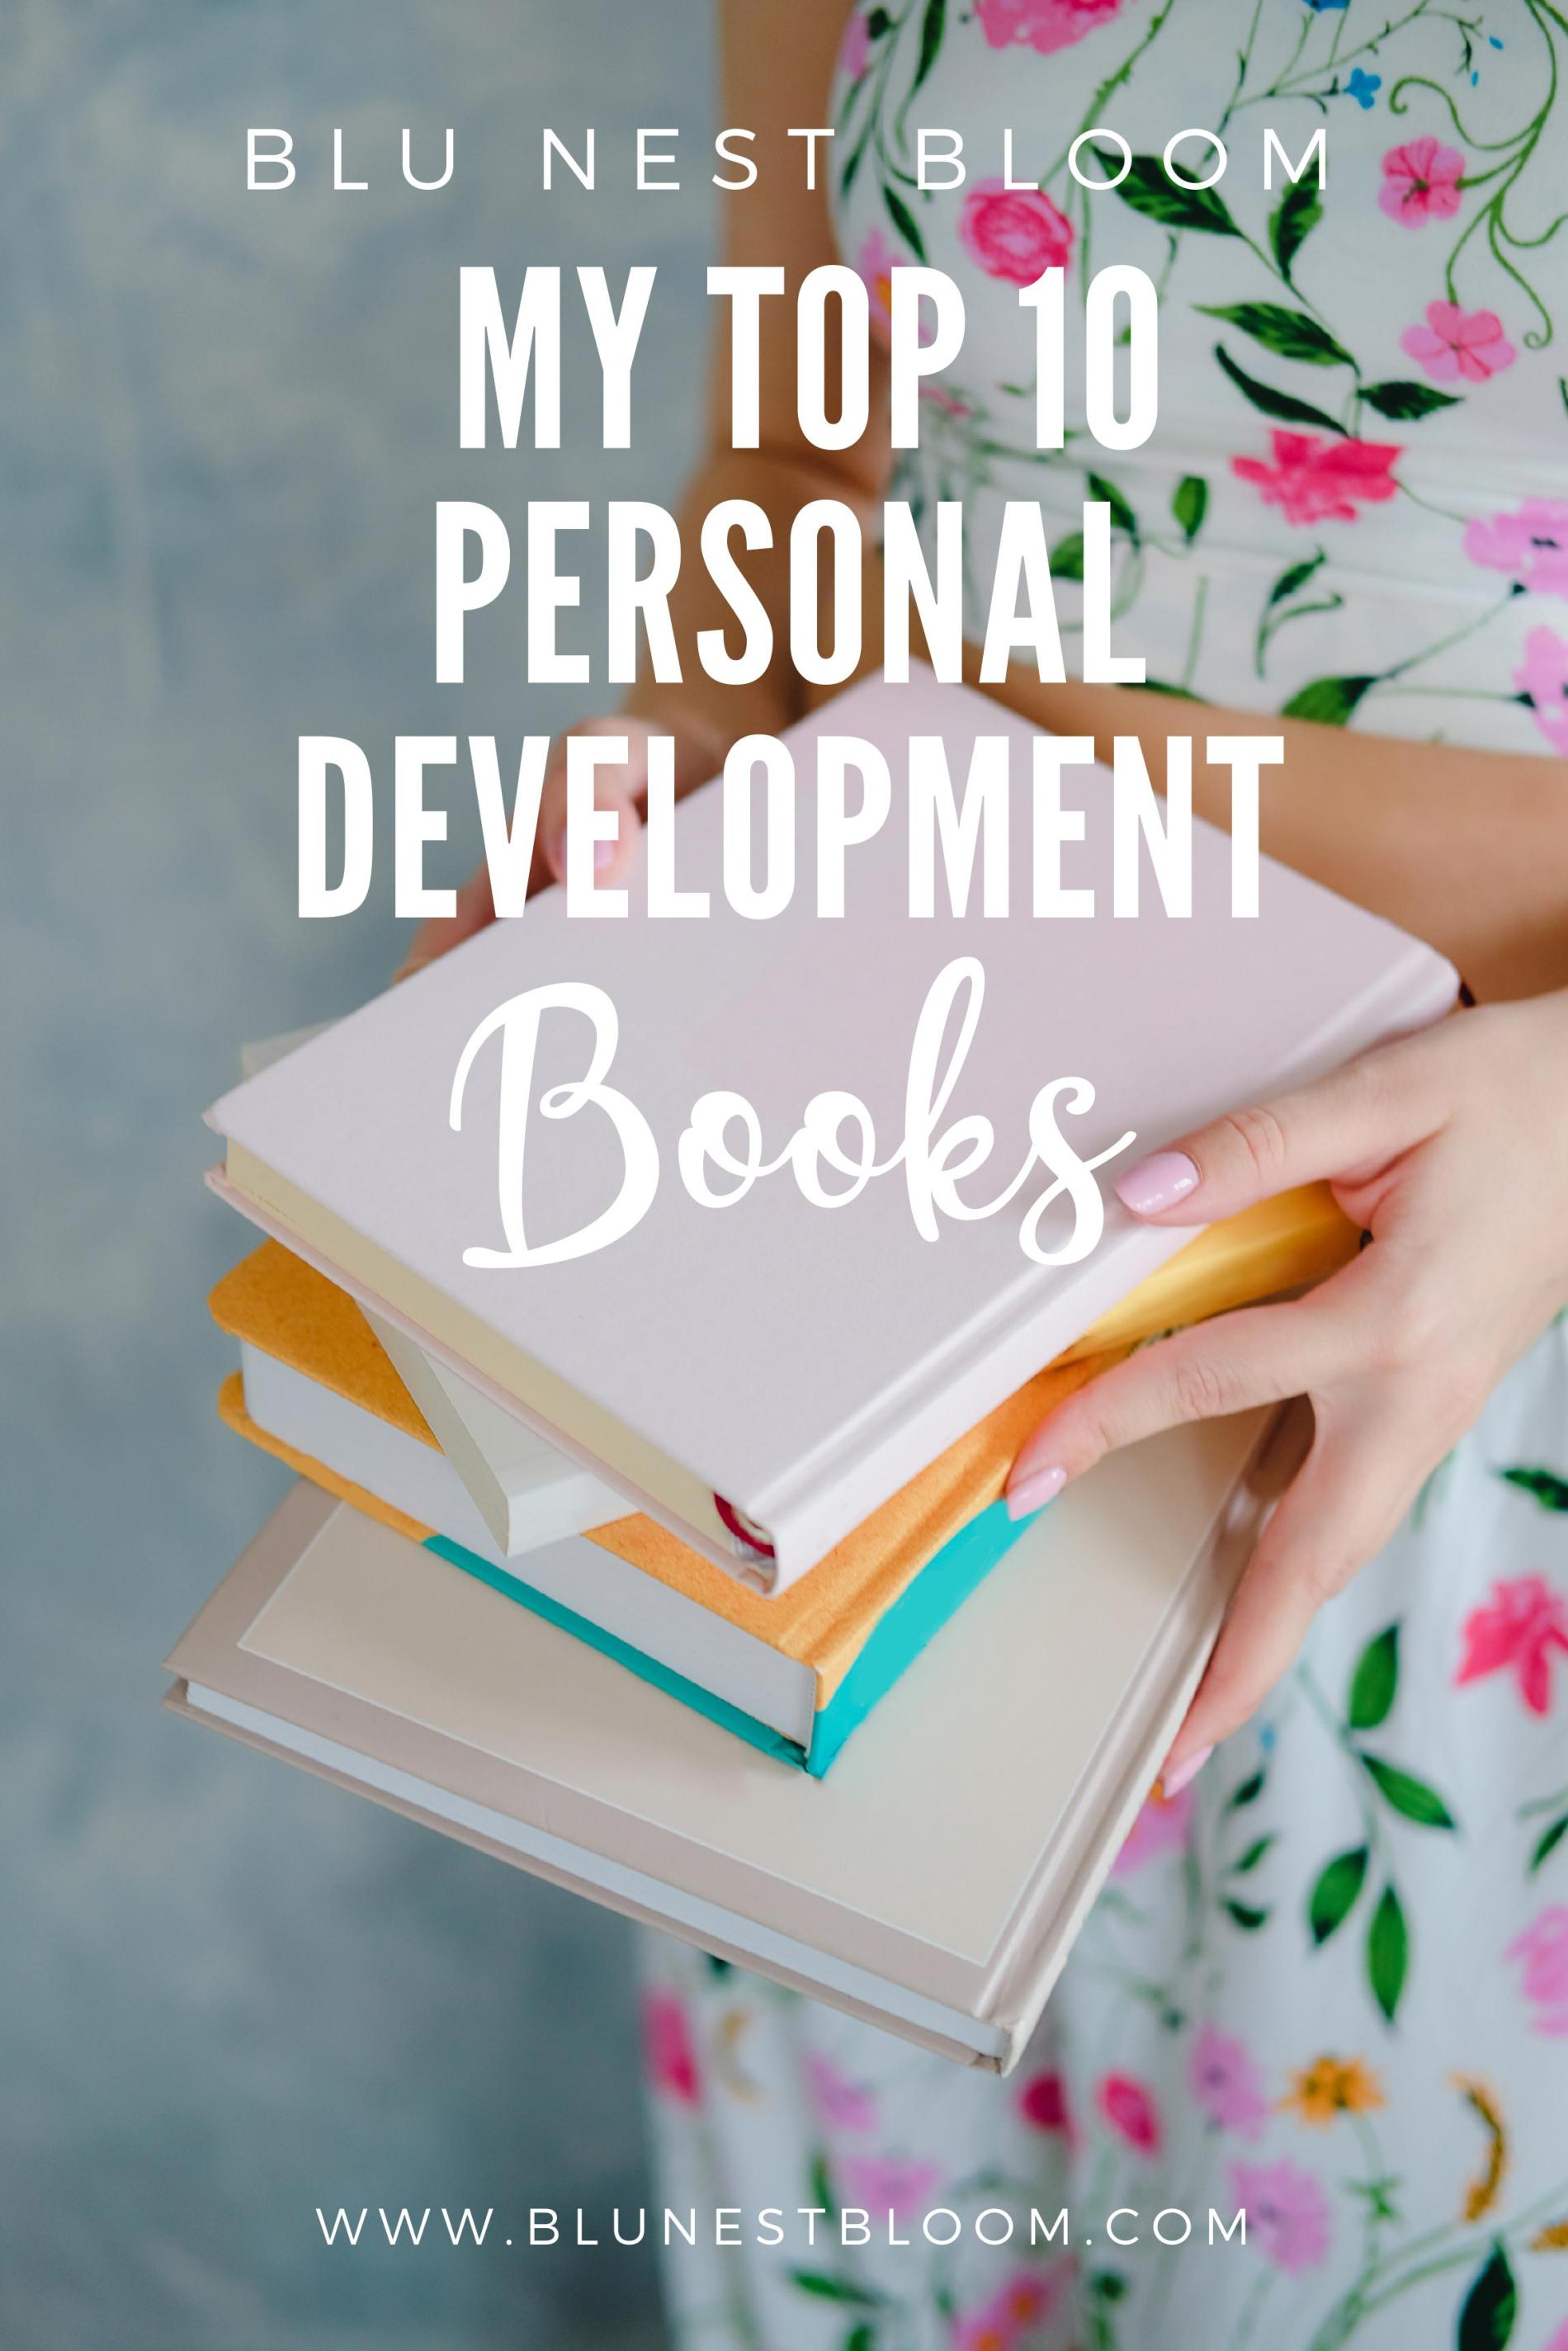 My Top 10 Personal Development Books